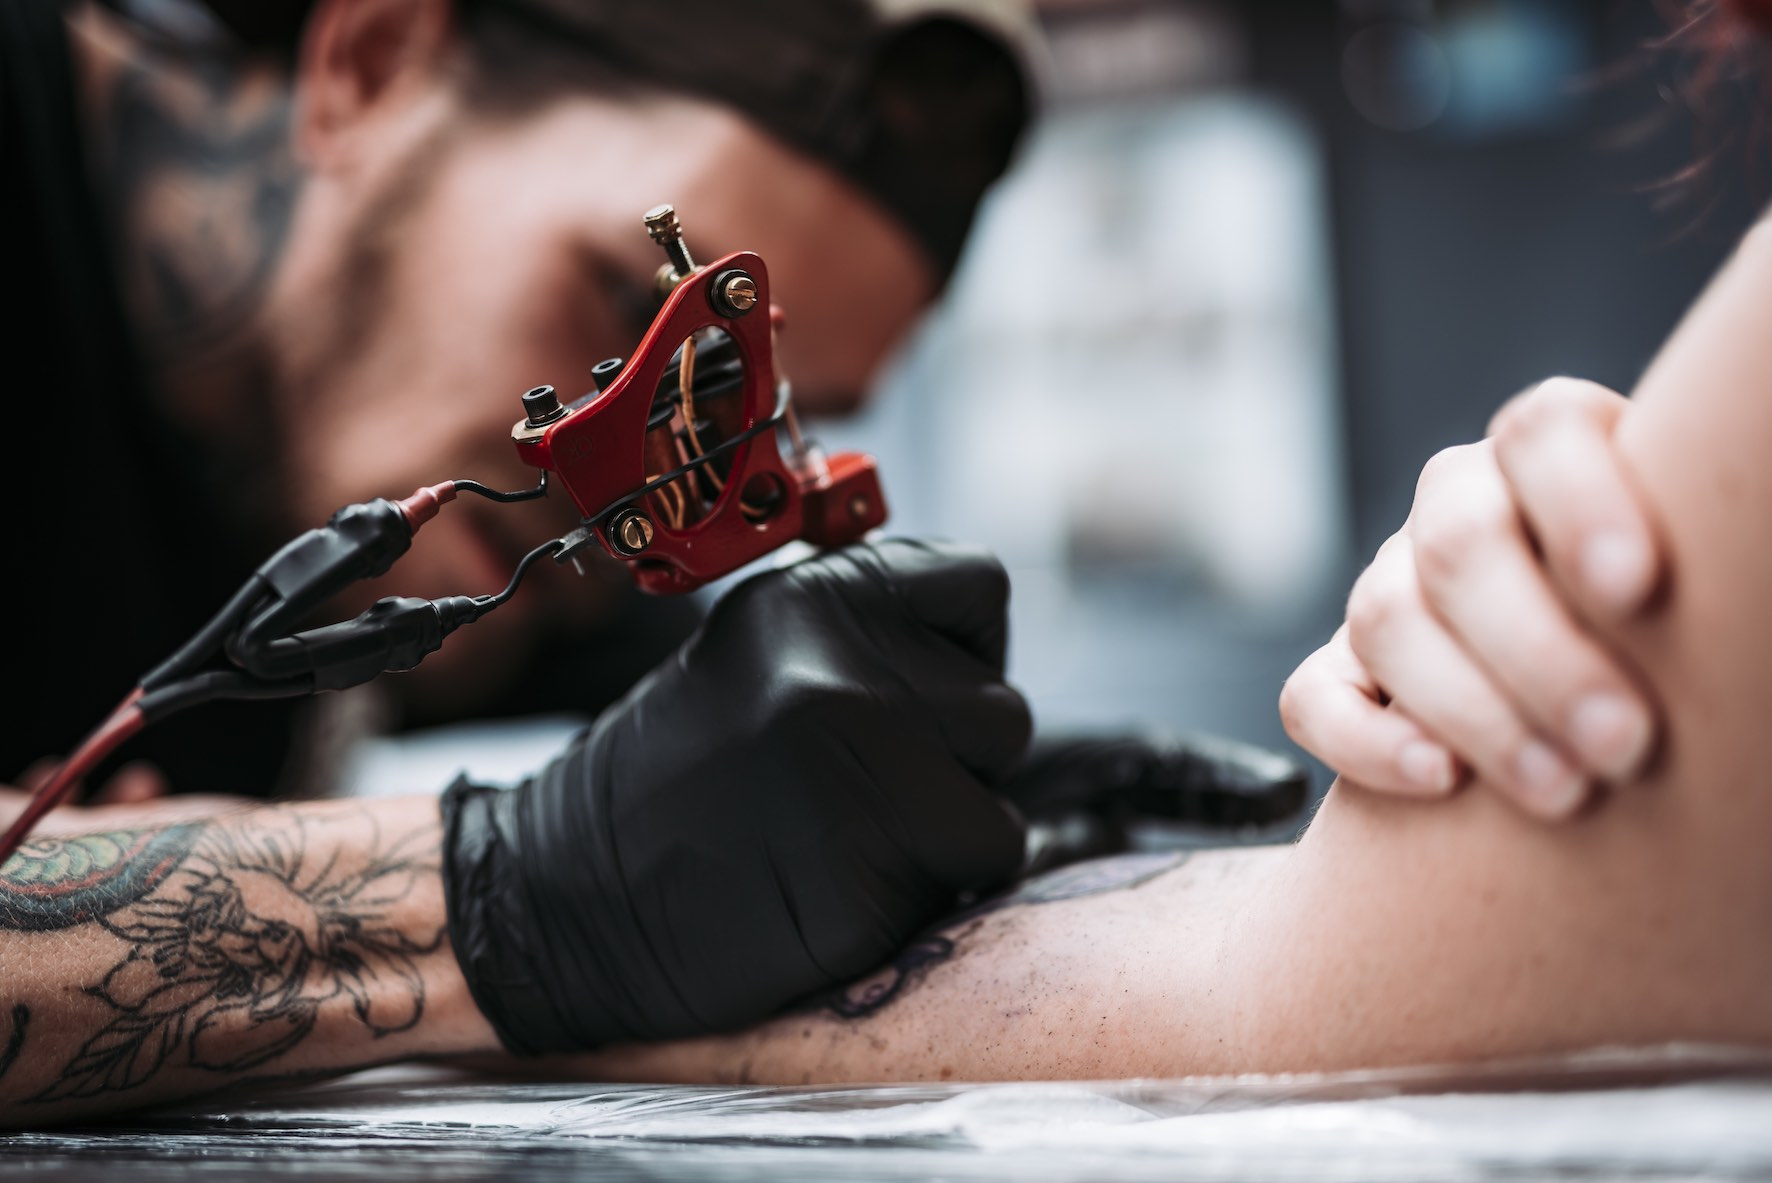 We talk tattoos and the tattoo industry with Daniel Forster